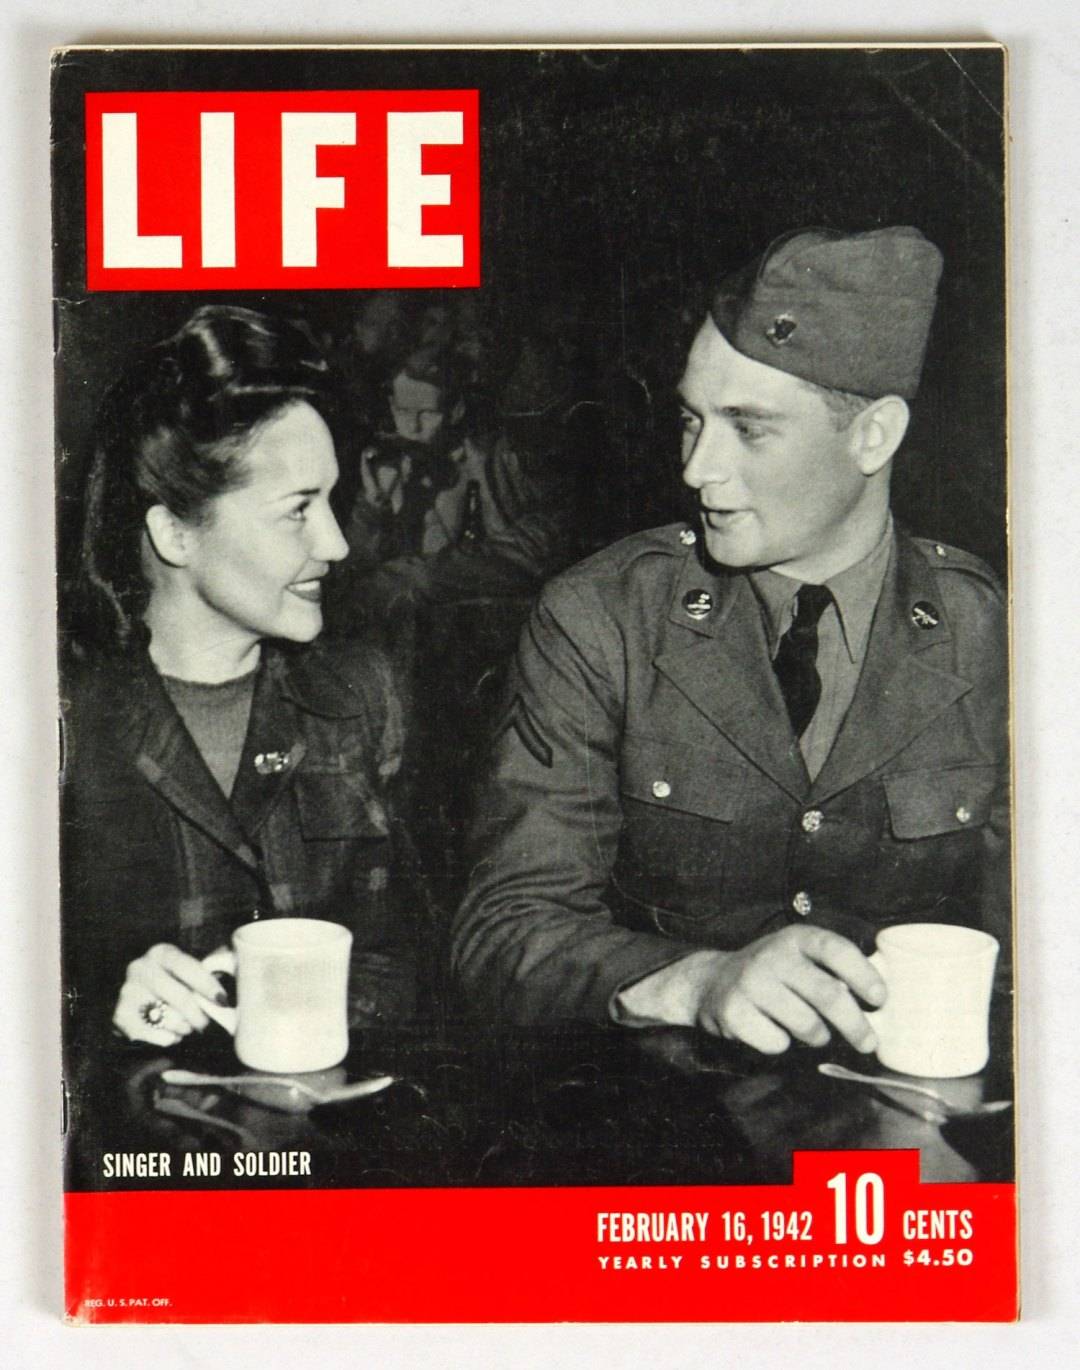 LIFE Magazine 1942 February 16 Singer and Soldier